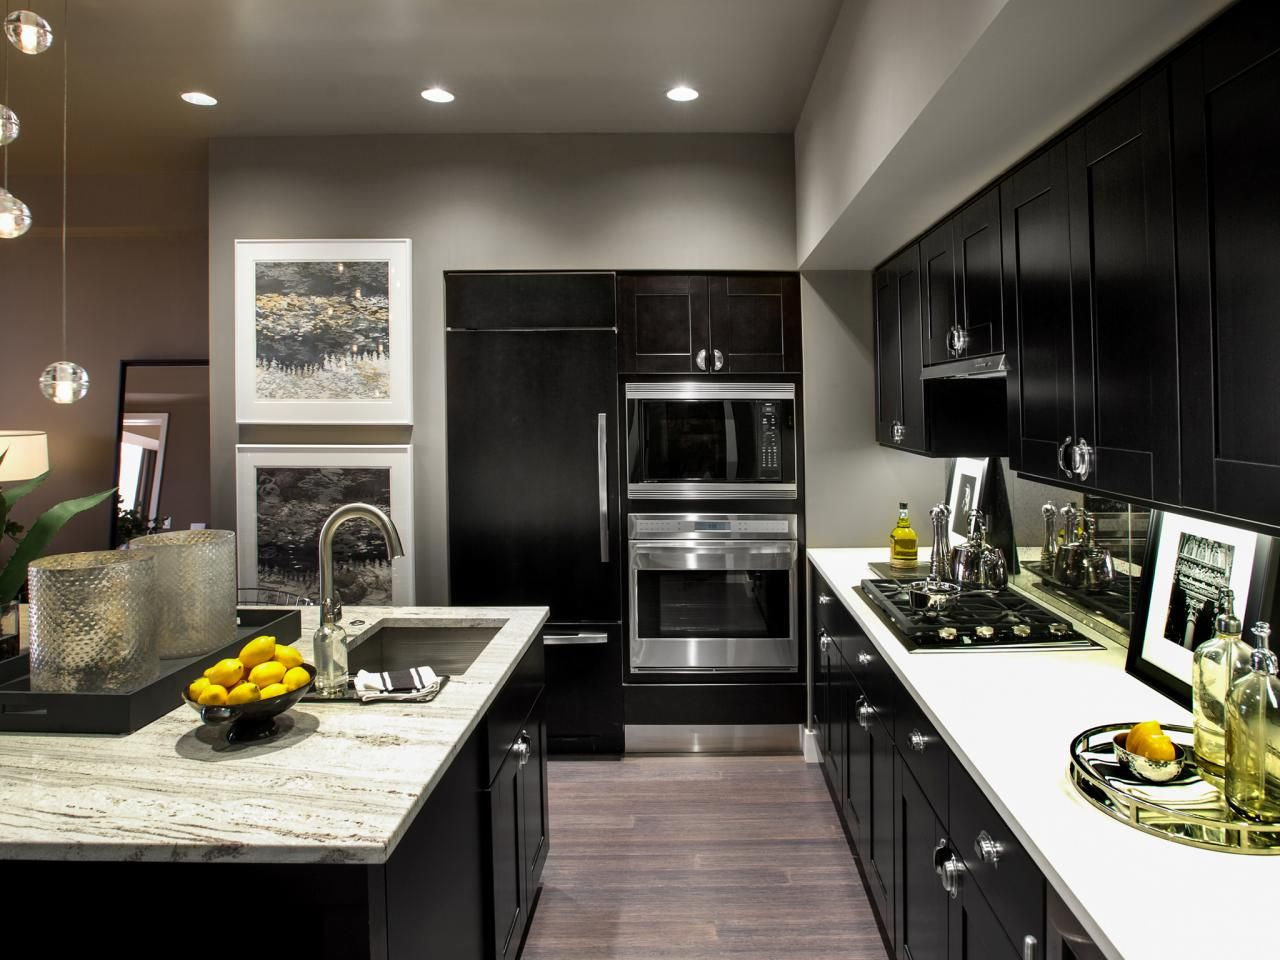 In This Sleek Contemporary Kitchen Featured In The 2013